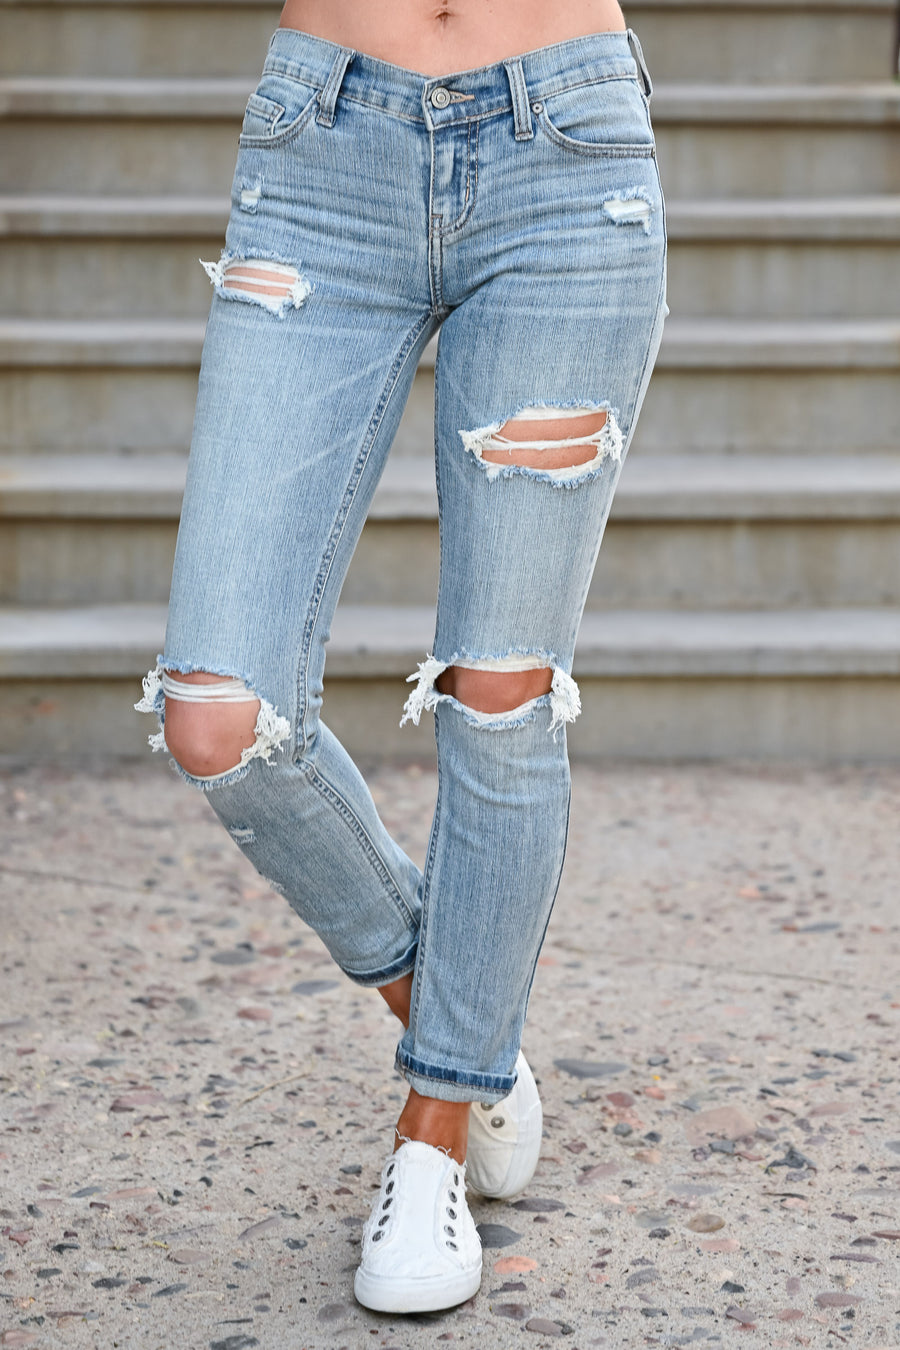 Distressed Sadie Skinny Jeans - Light Wash womens casual distressed zipper fly jeans closet candy front